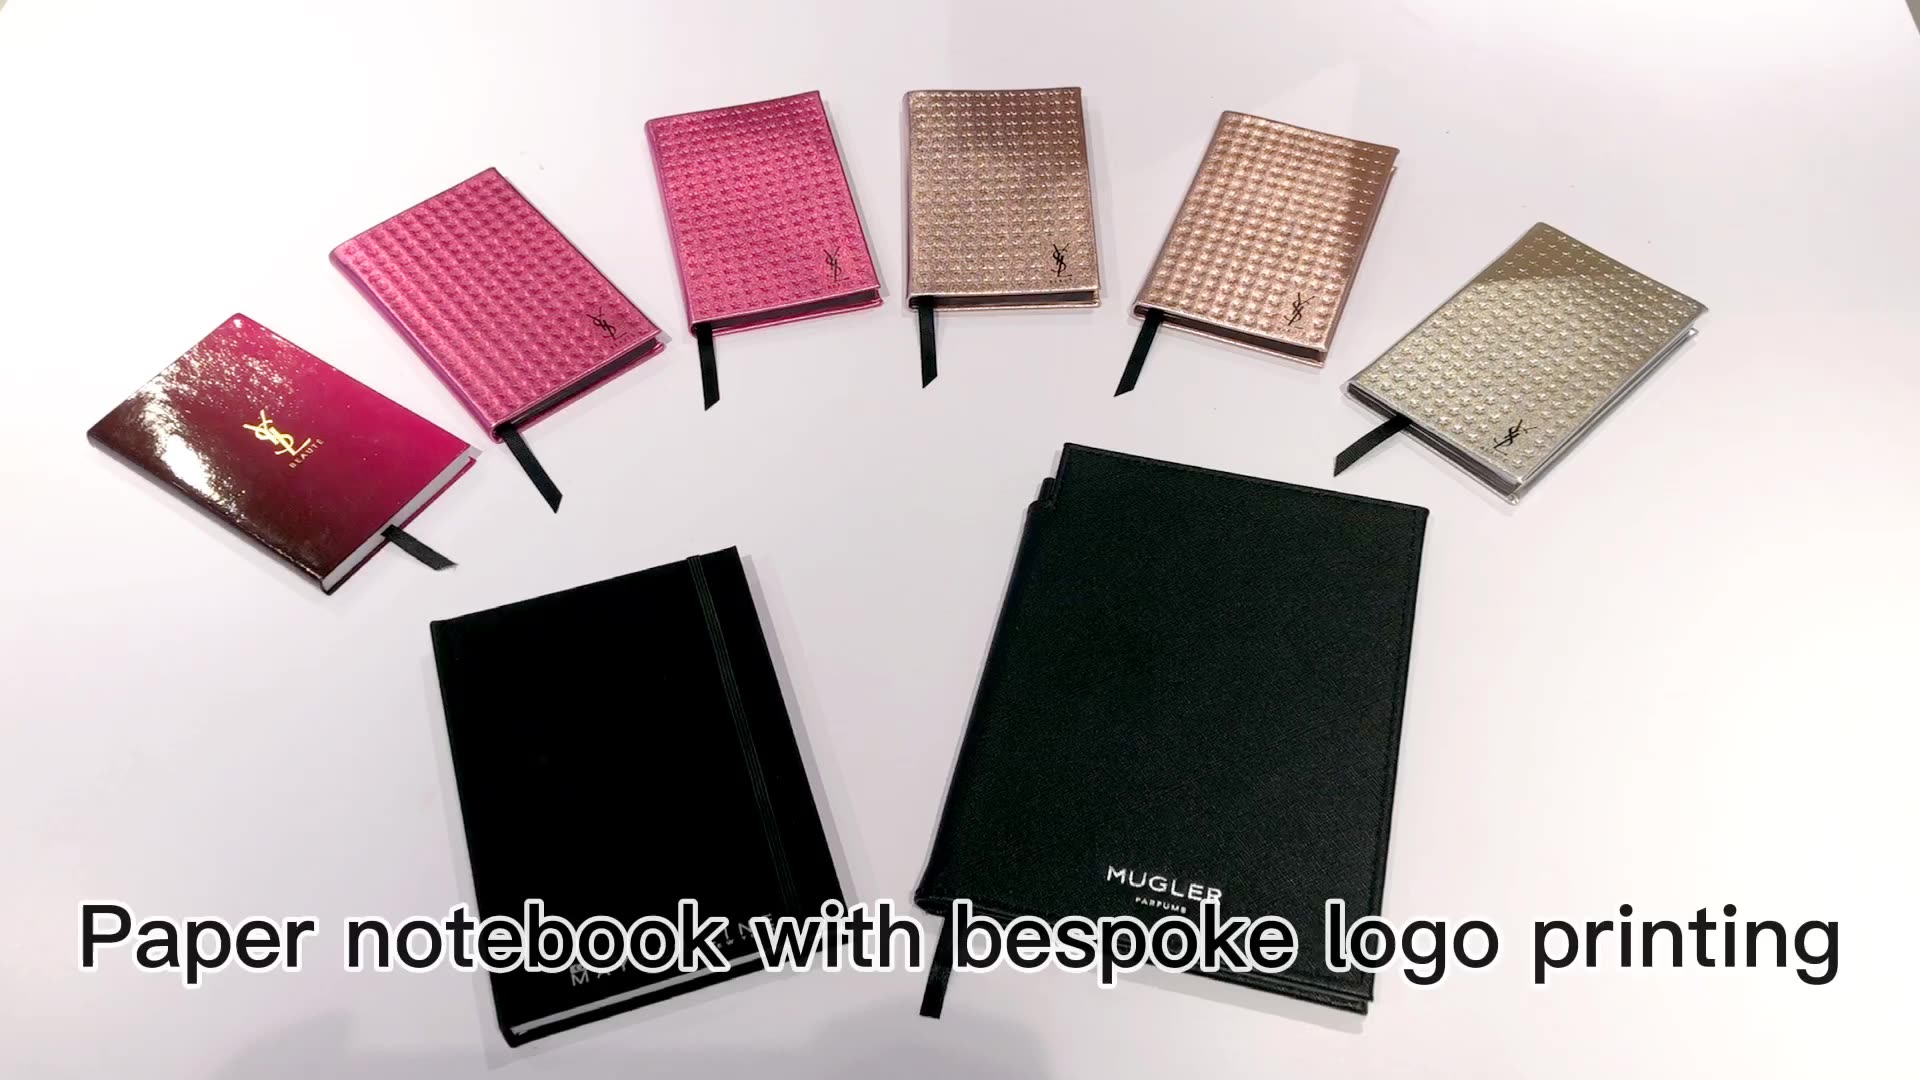 Promotional gift single lined academic journal diary notebook pocket notepad with drawer box